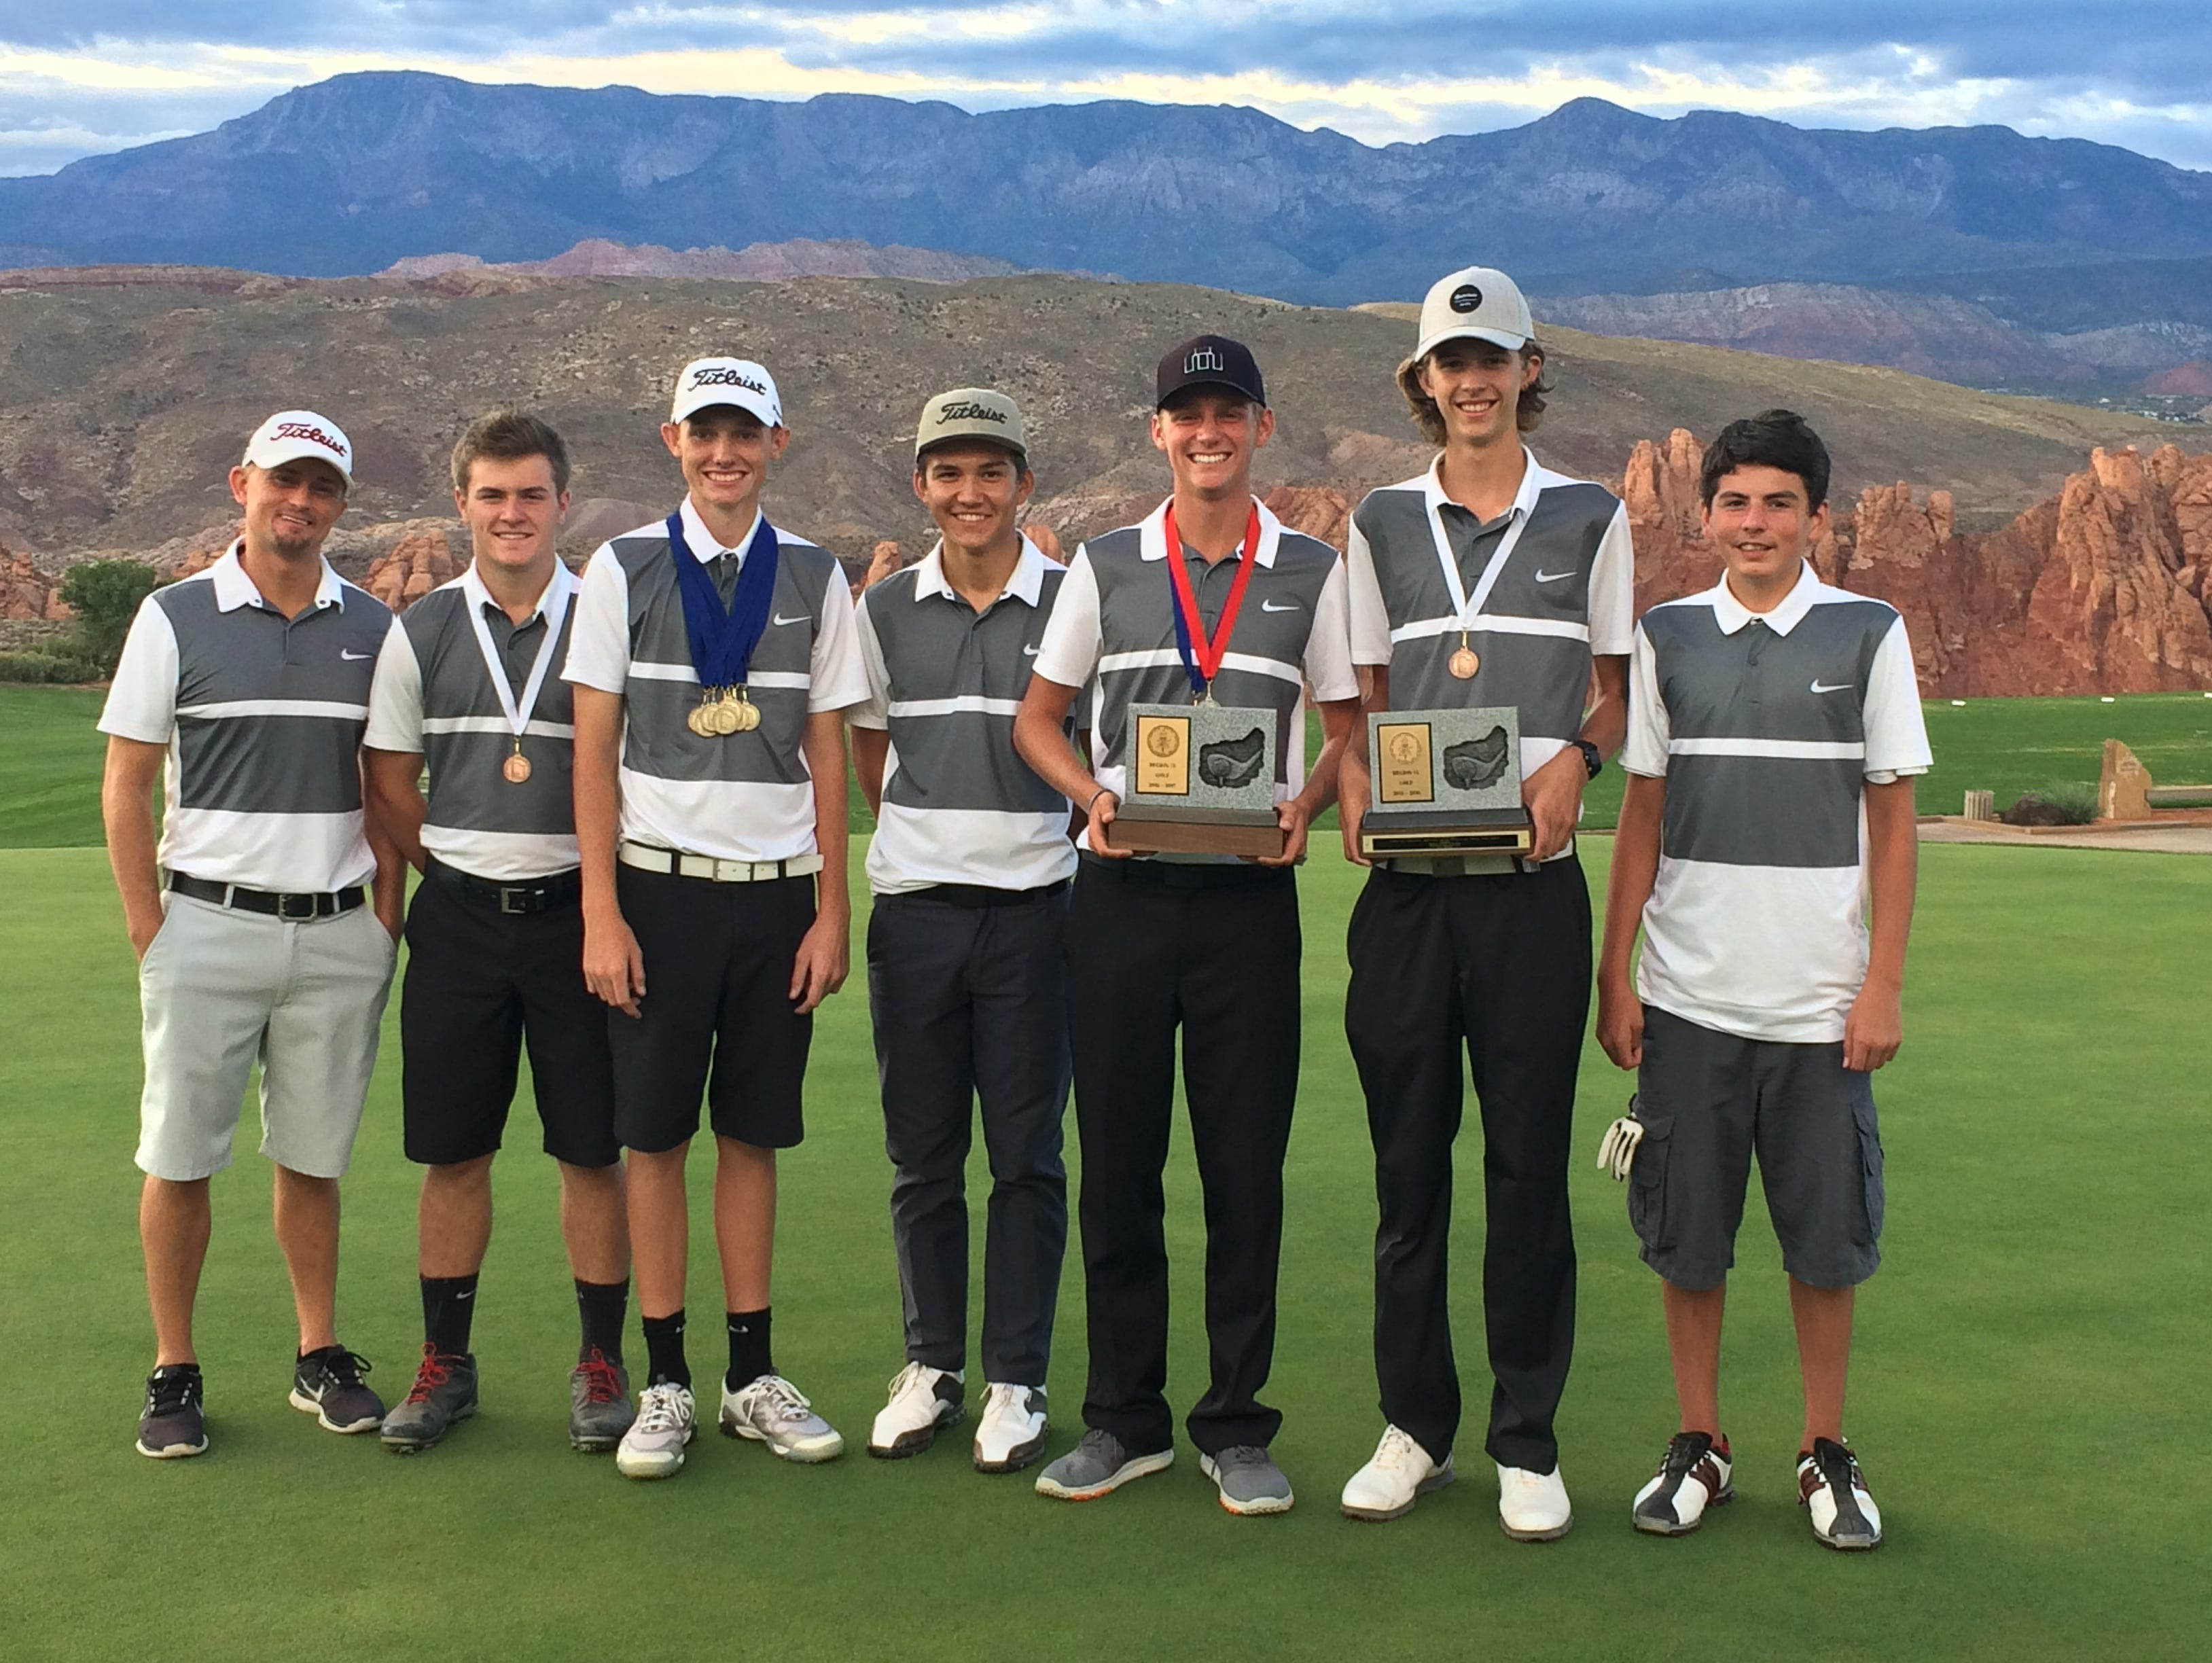 The Pine View golf team poses for a picture after winning its second consecutive region title at Sky Mountain last week.